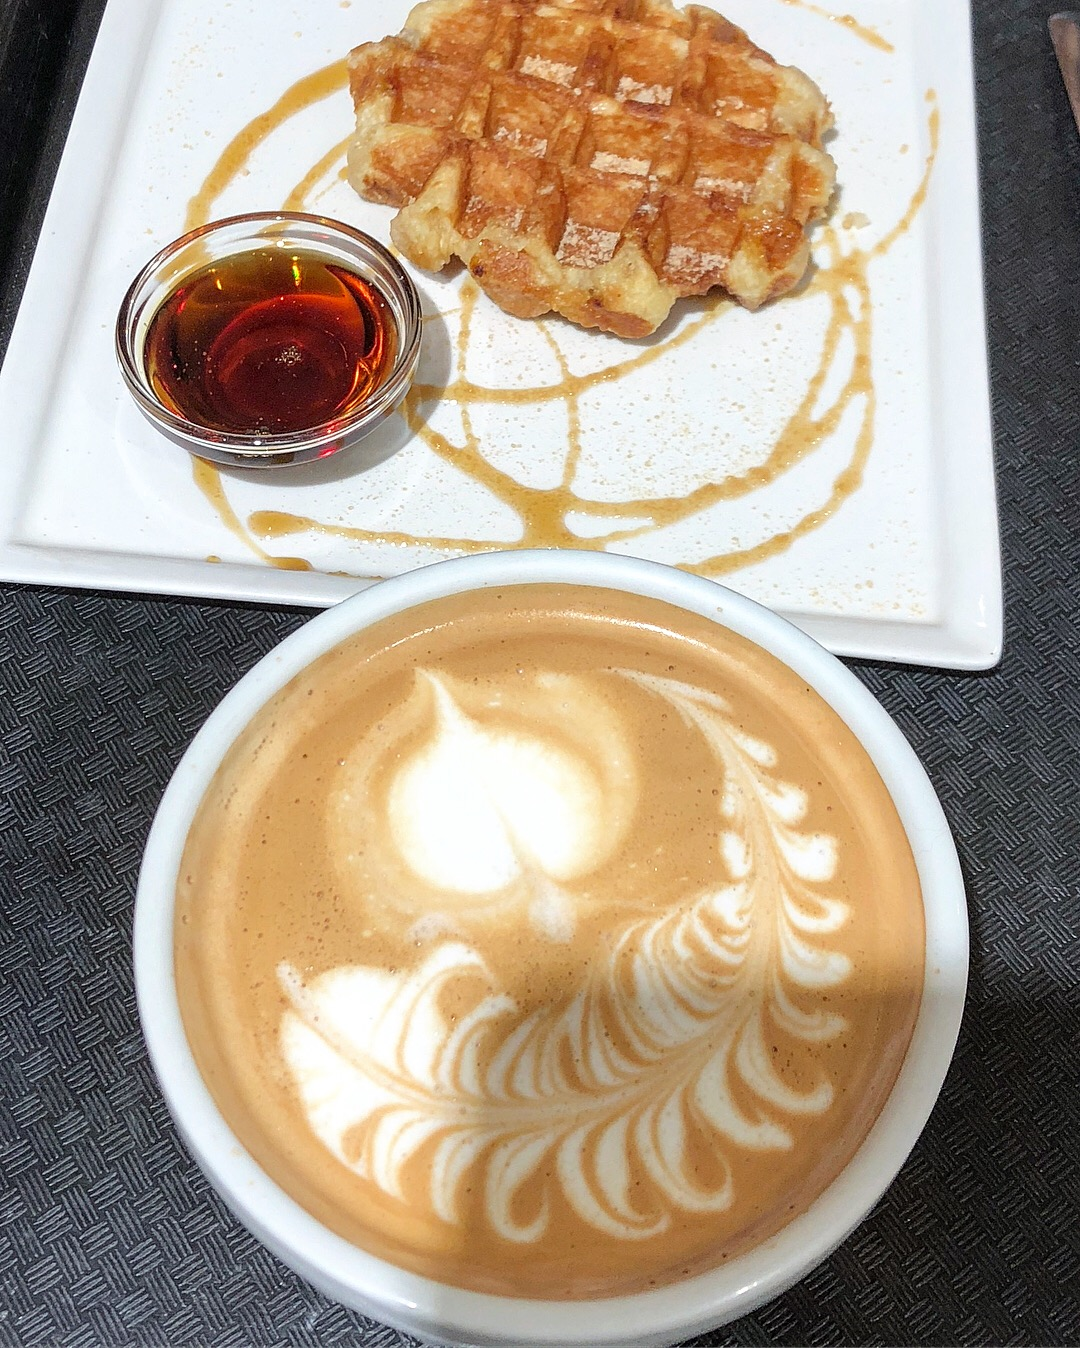 So maple syrup alone, has so many varieties. All shades of colours, consistencies, and different maple syrup products. This right here is waffle with maple drizzle and maple latte.